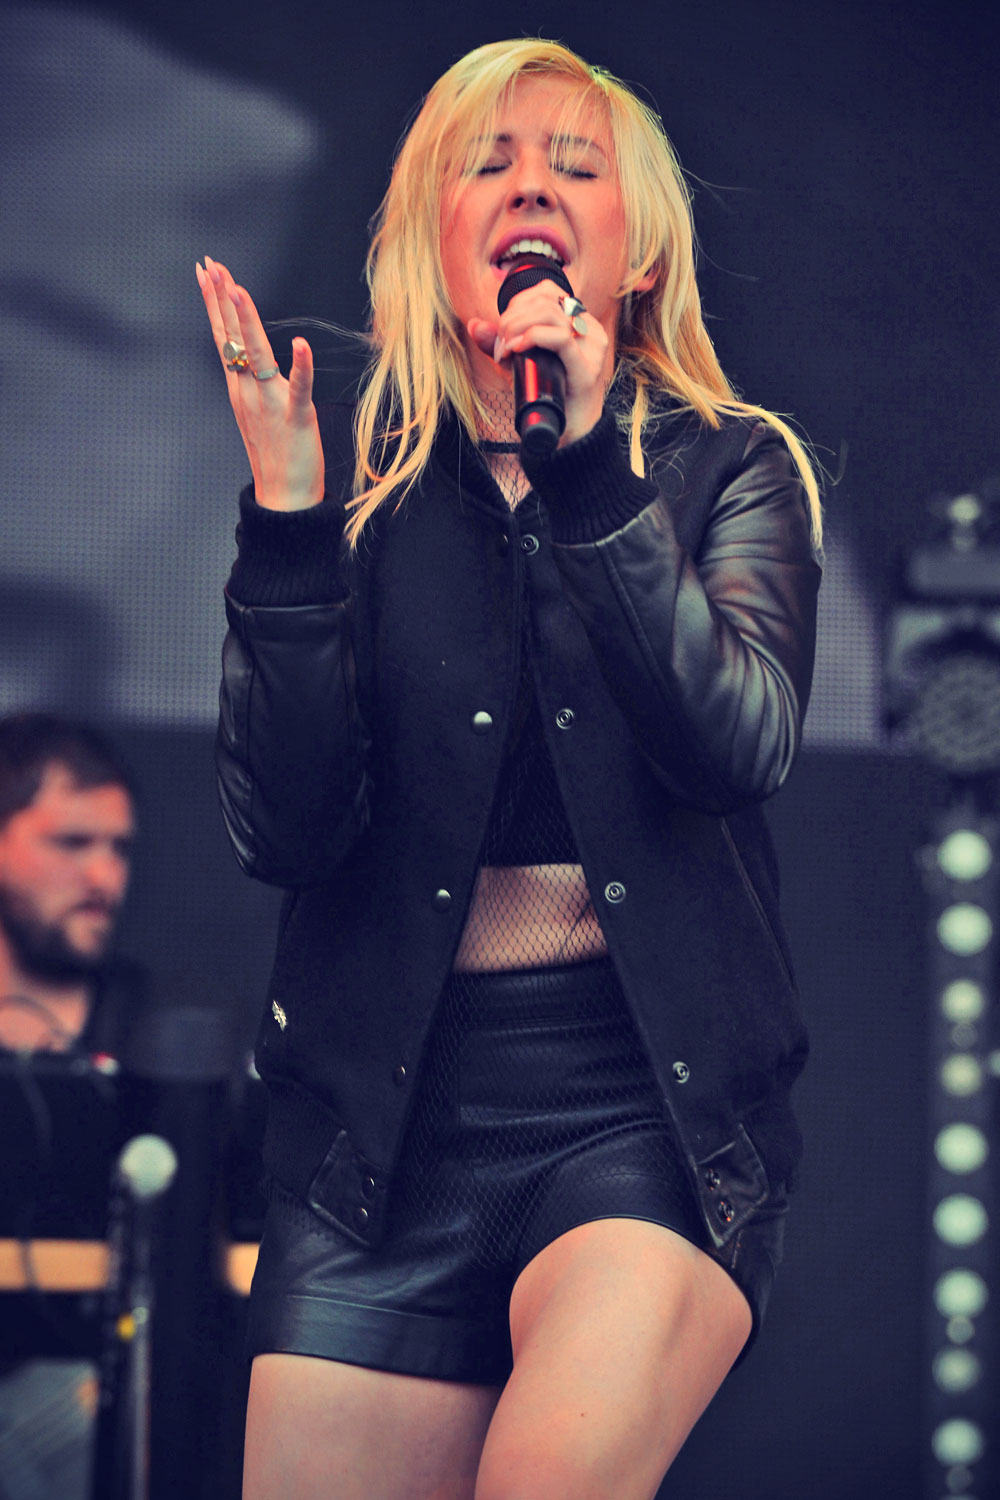 Ellie Goulding at Day 2 of Radio 1's Big Weekend Festival